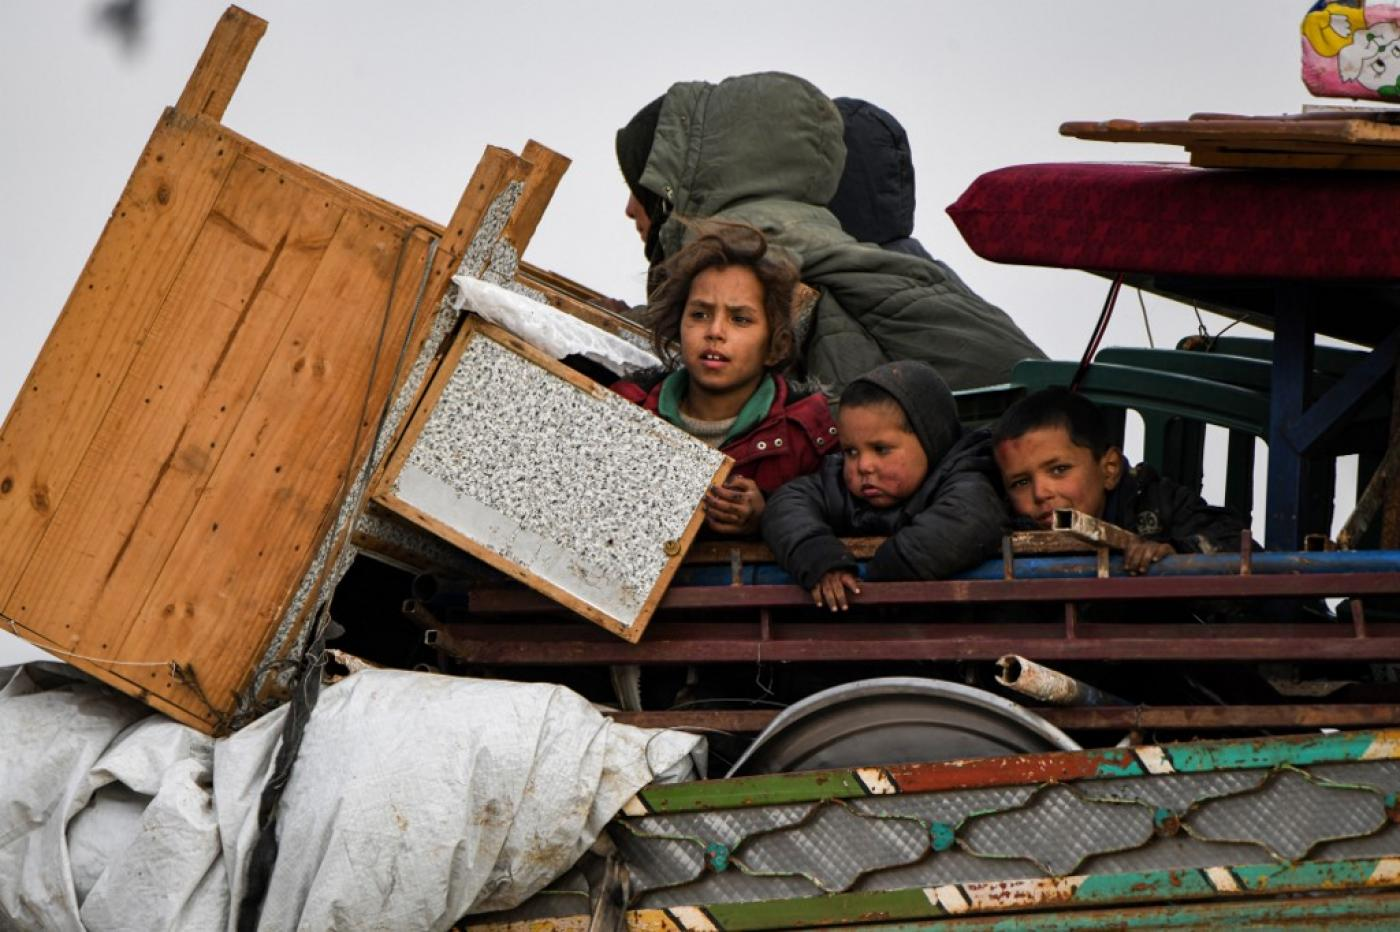 More than 14 million people internally displaced in first half of 2020: Report